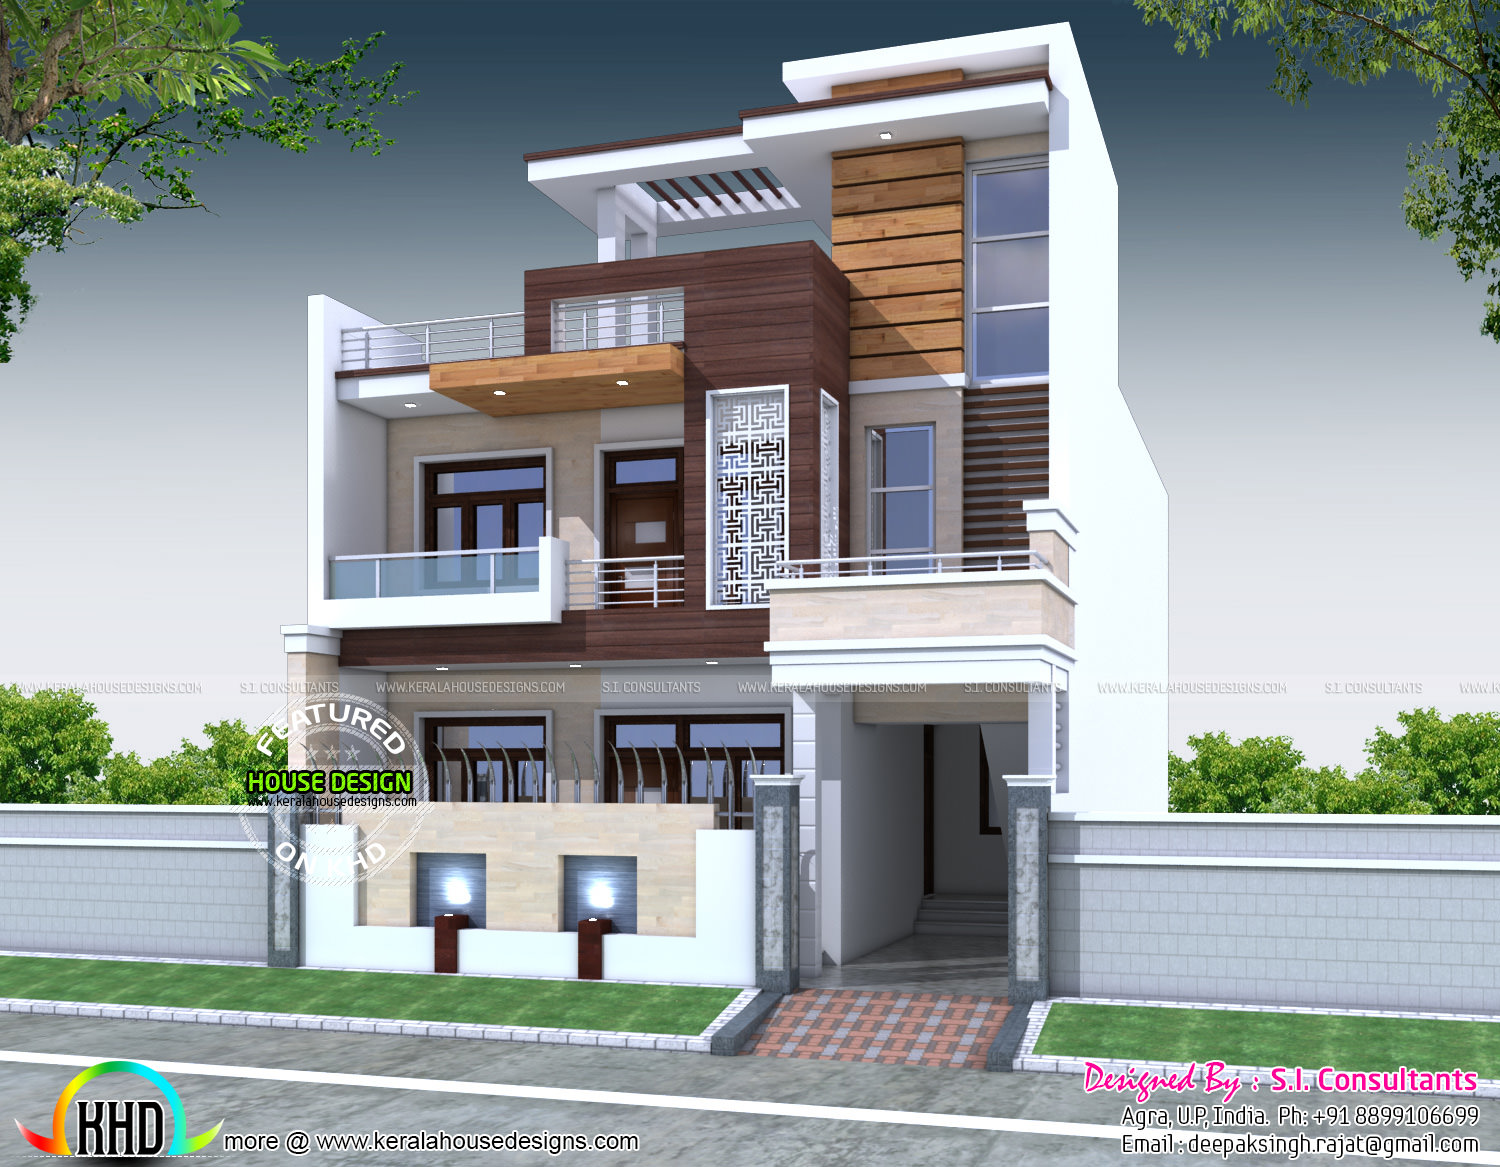 Decorative 5 bedroom house architecture kerala home for North indian house plans with photos